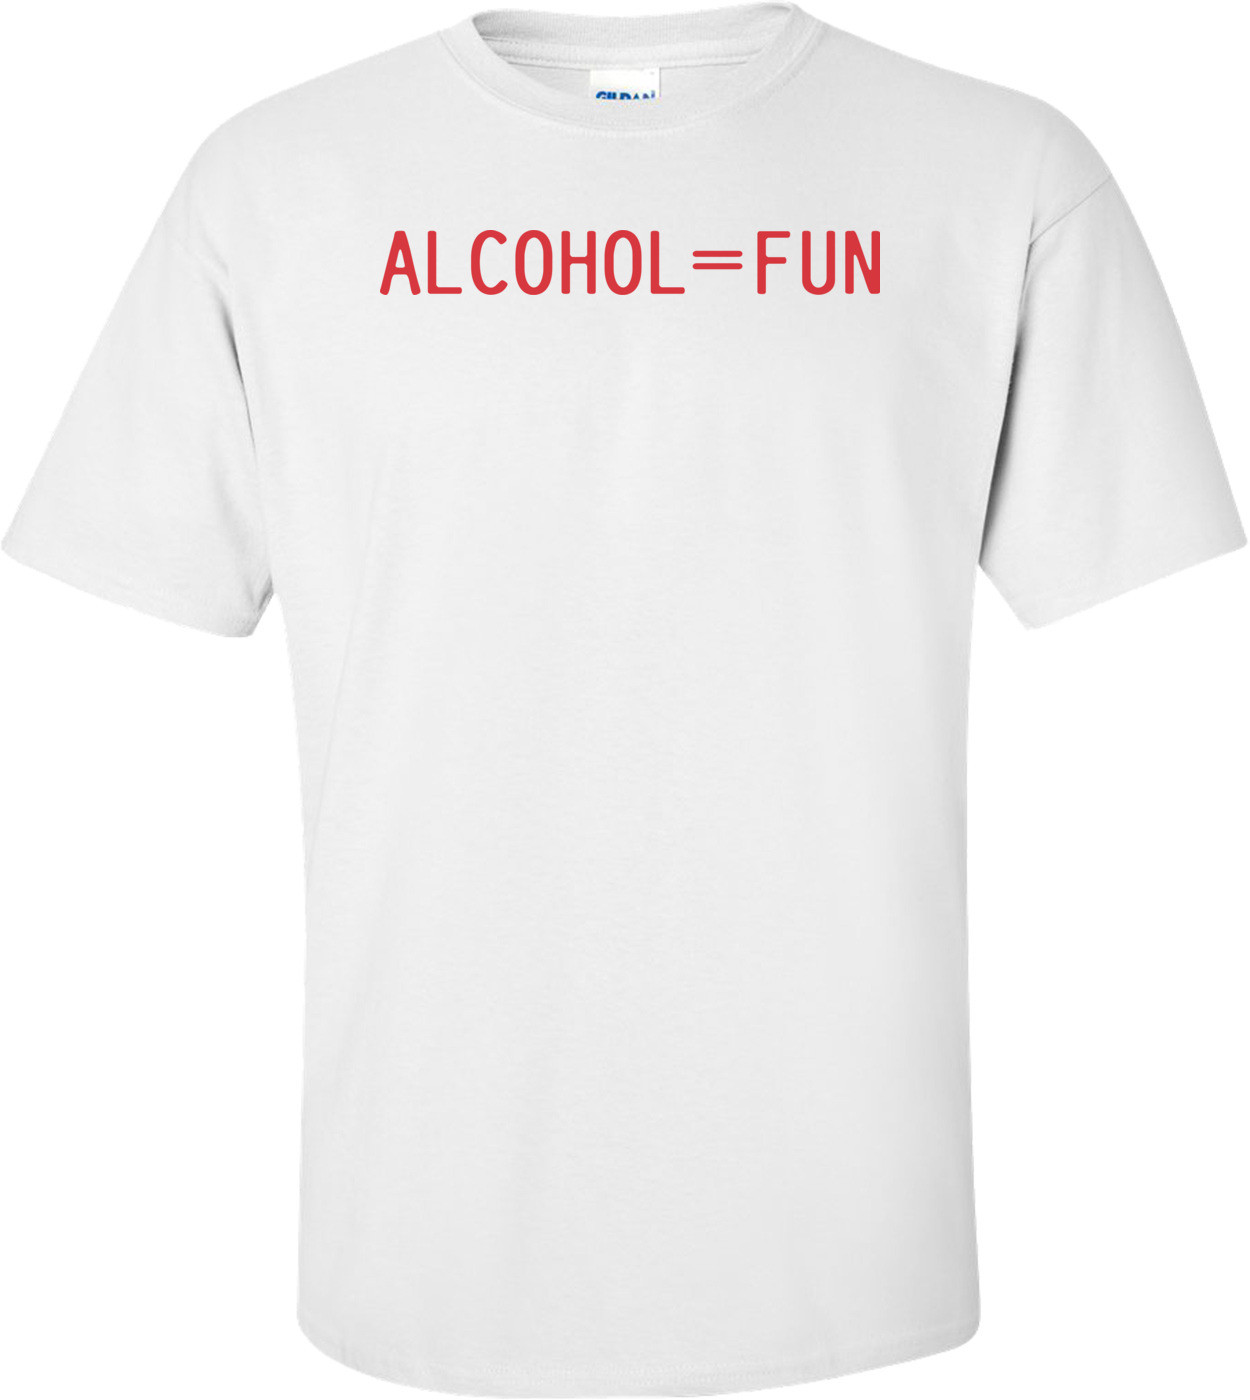 Alcohol = Fun T-shirt